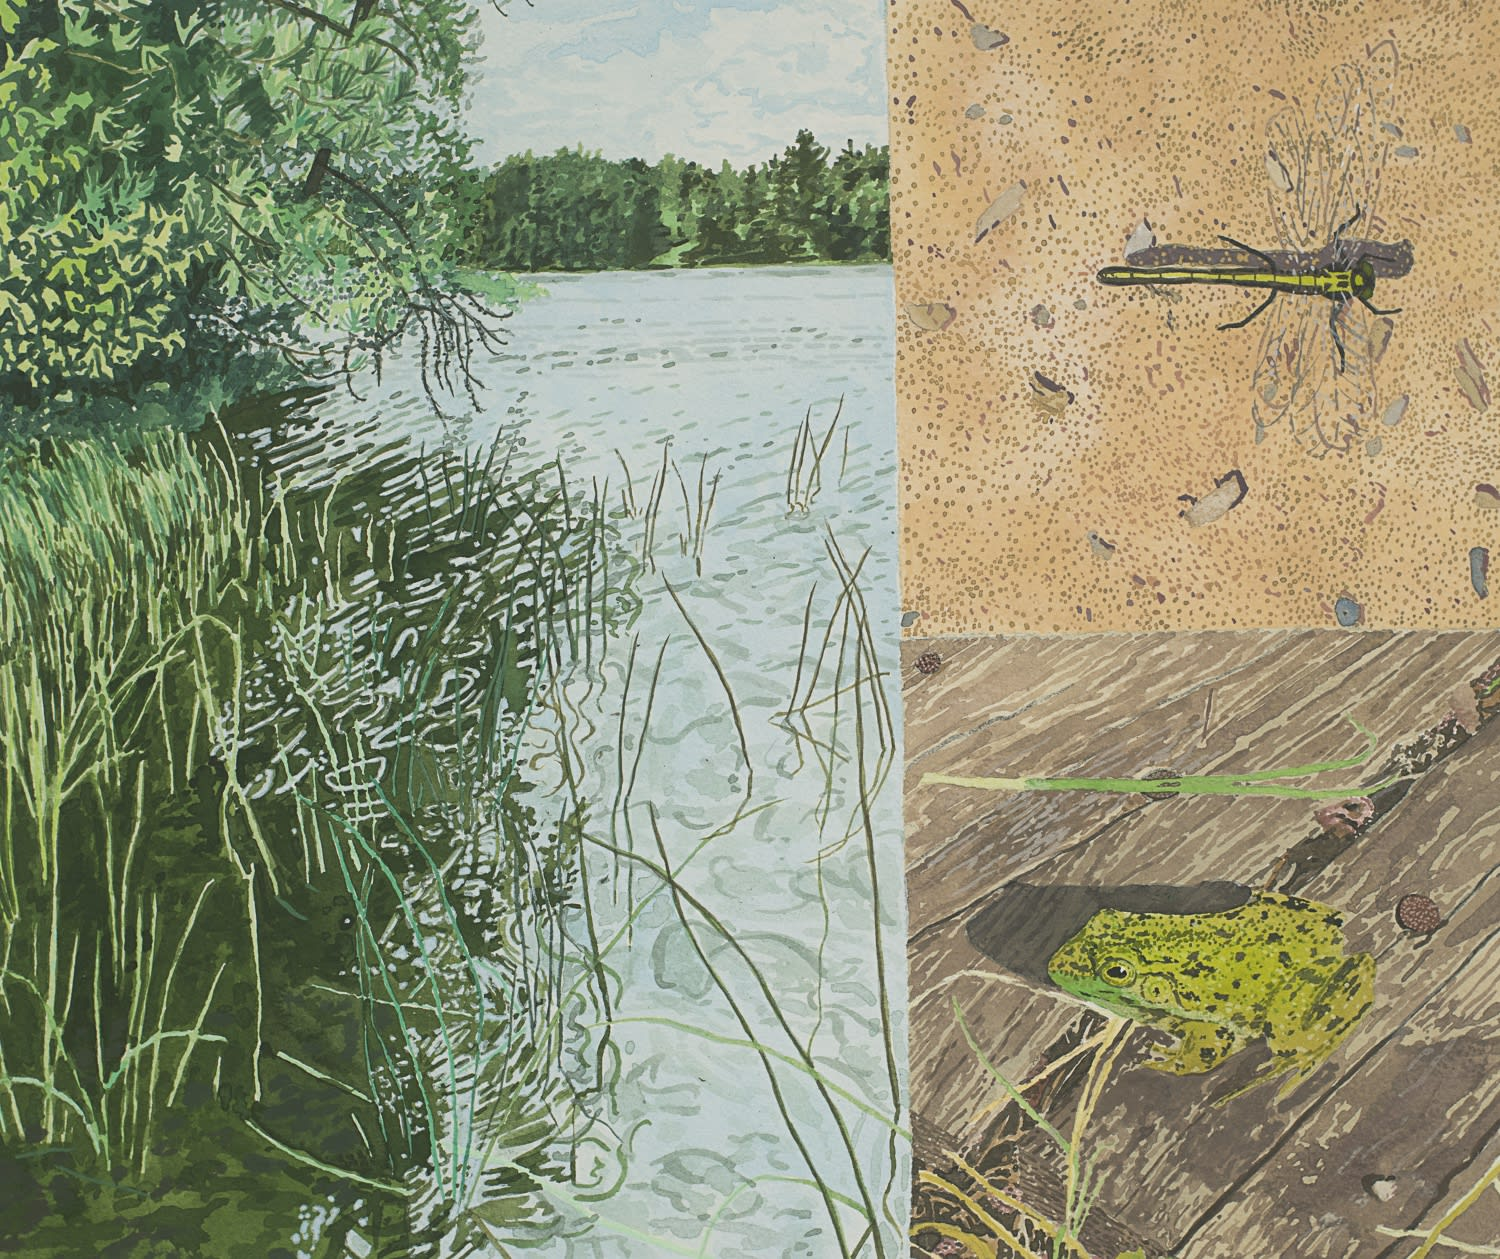 Breehan James, Cottage Book Painting: Lake/Frog/Dragonfly, 2020 acrylic gouache on paper on panel, 11 x 13 in